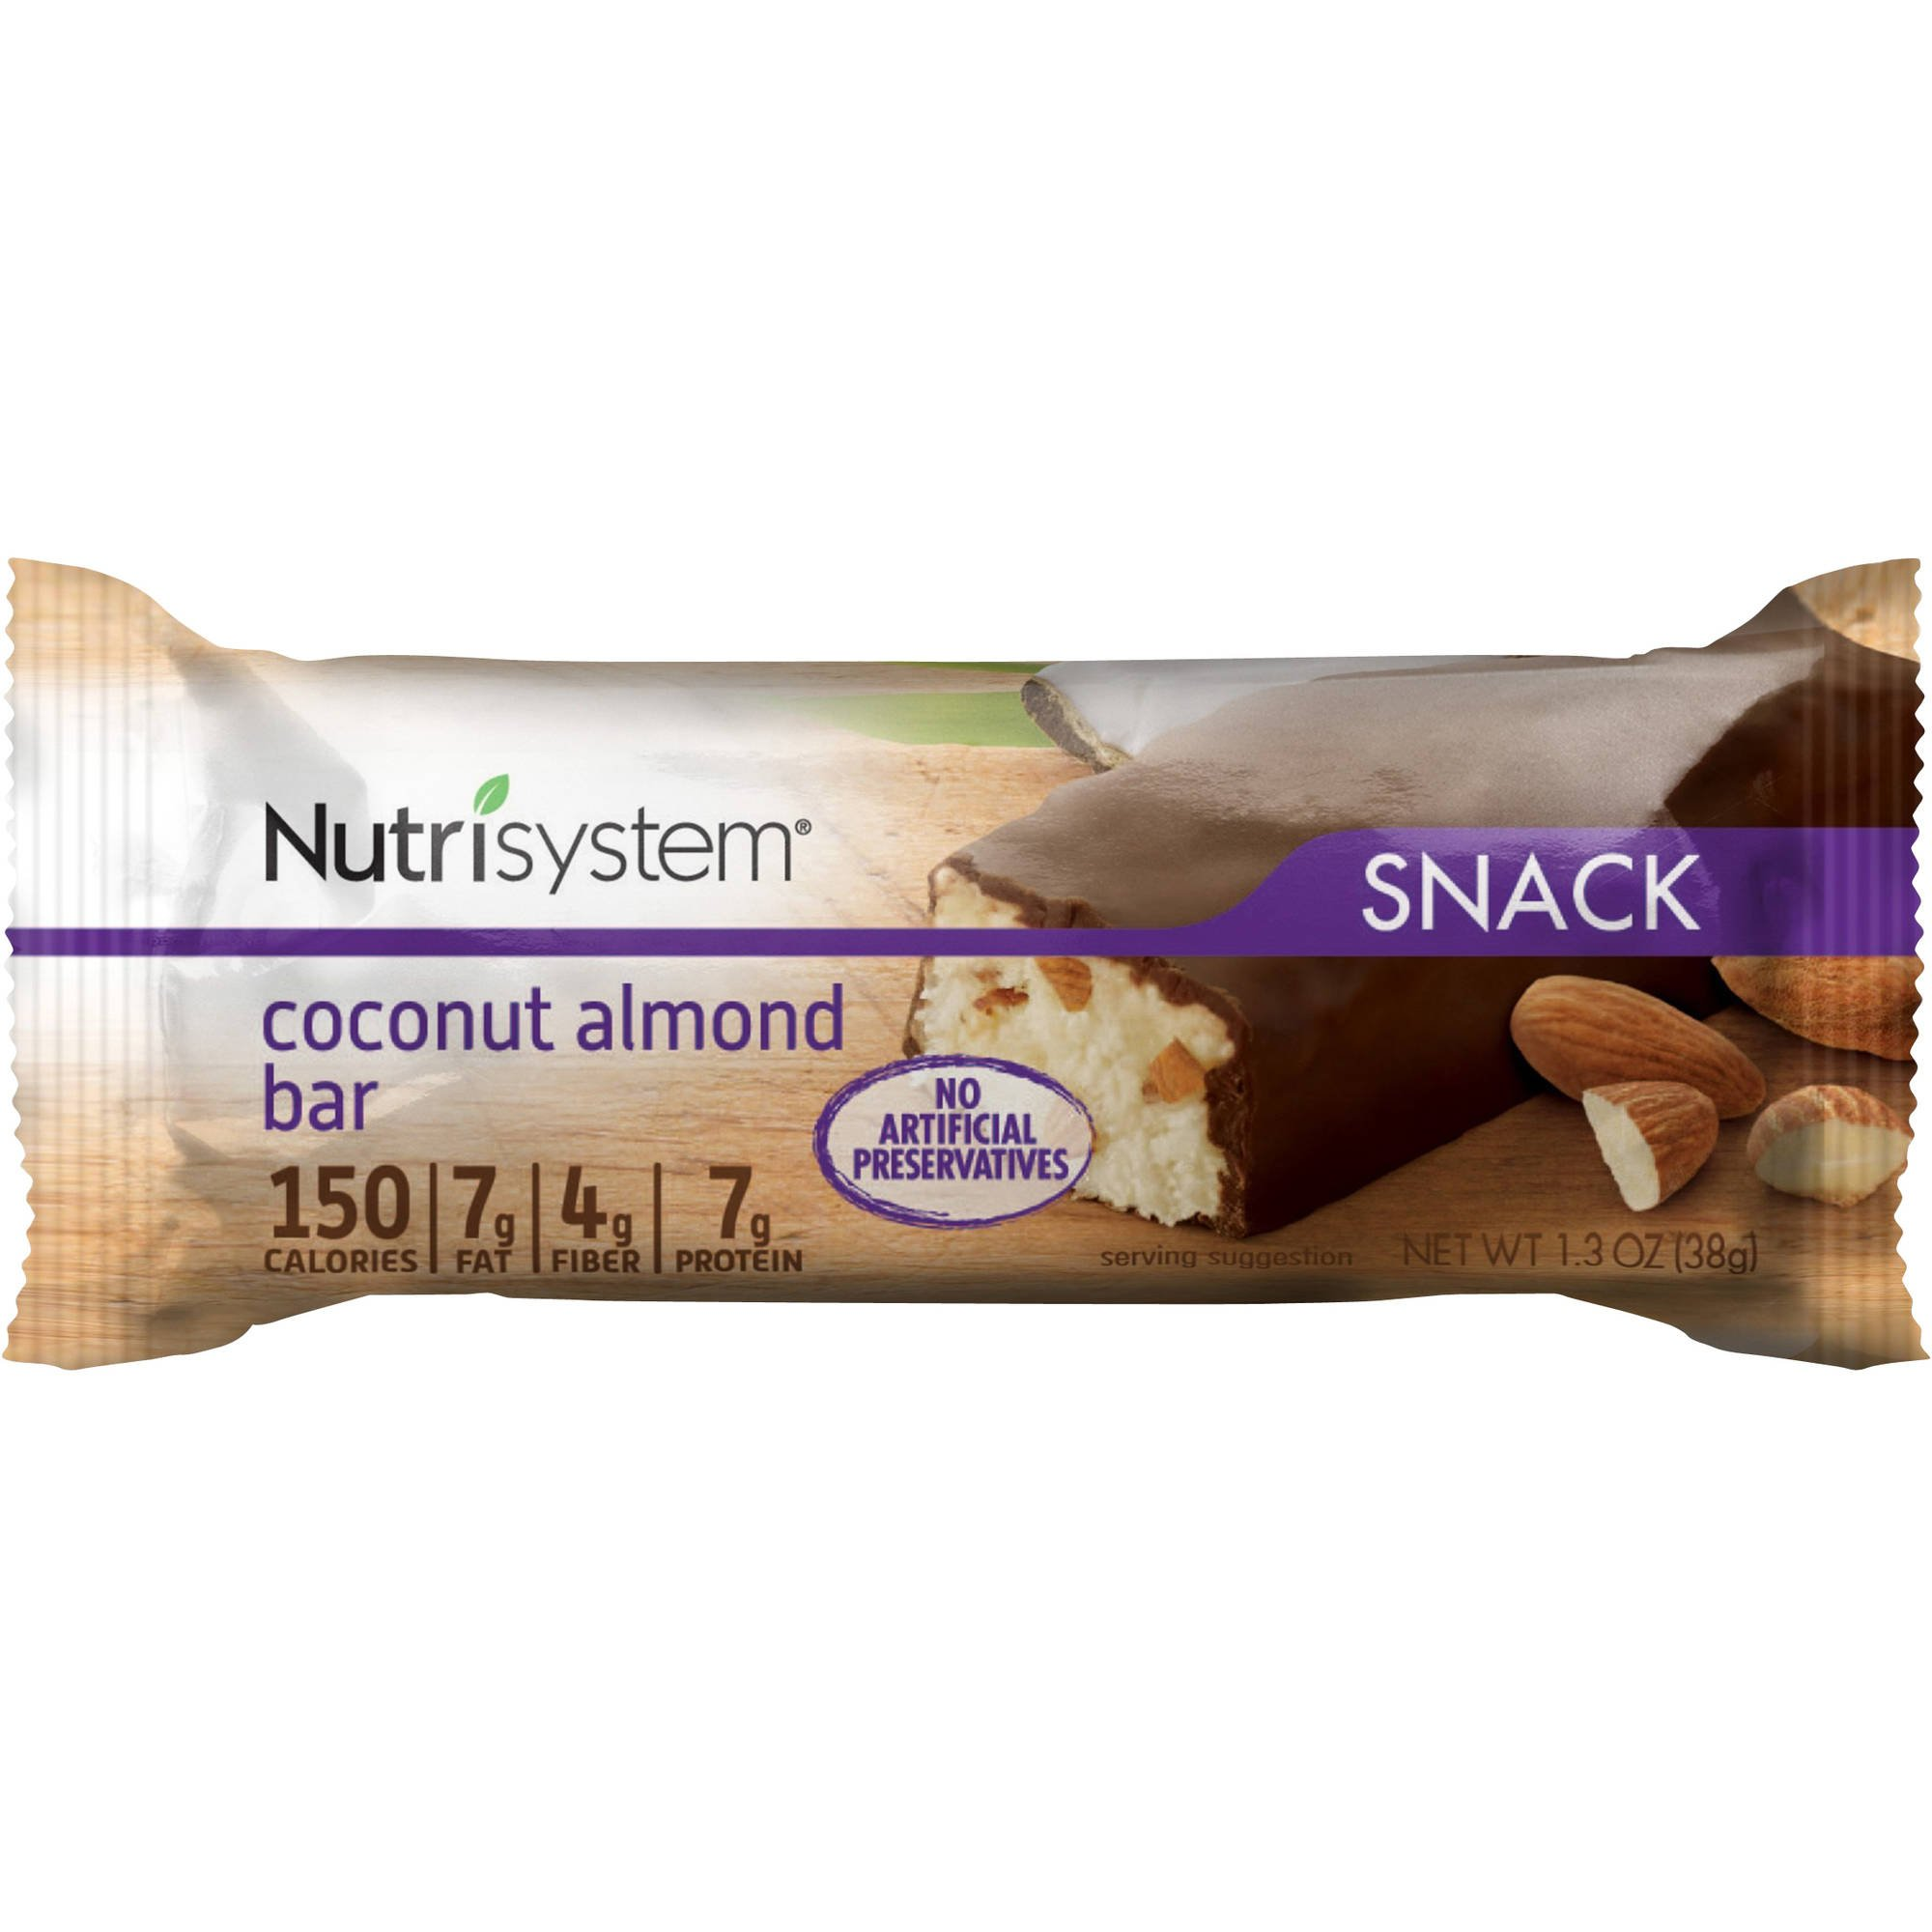 Nutrisystem Snack Coconut Almond Bar, 4 Bars (Pack of 2)